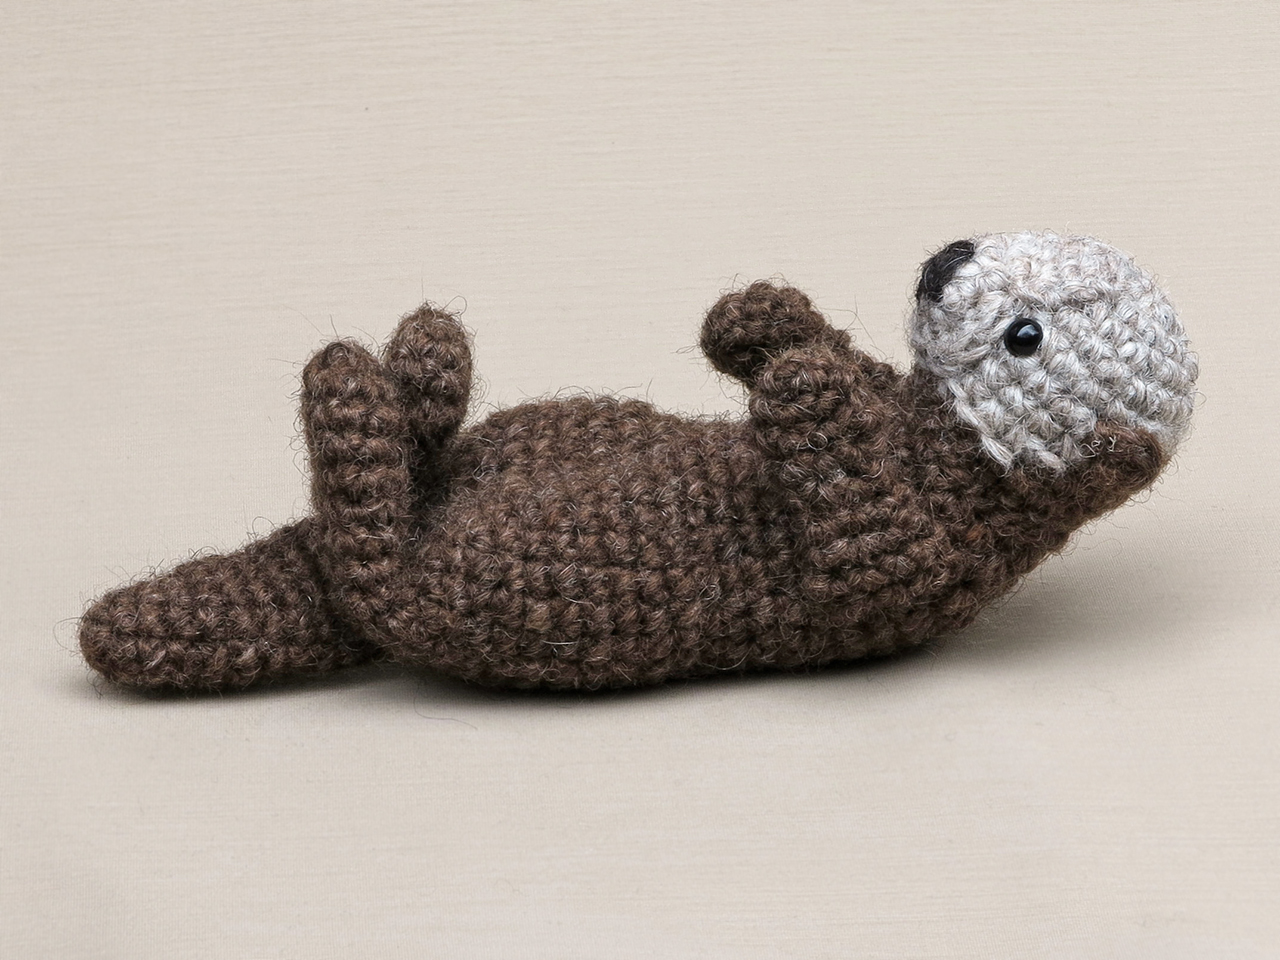 5 Free Otter Toy Patterns - diy Thought | 960x1280